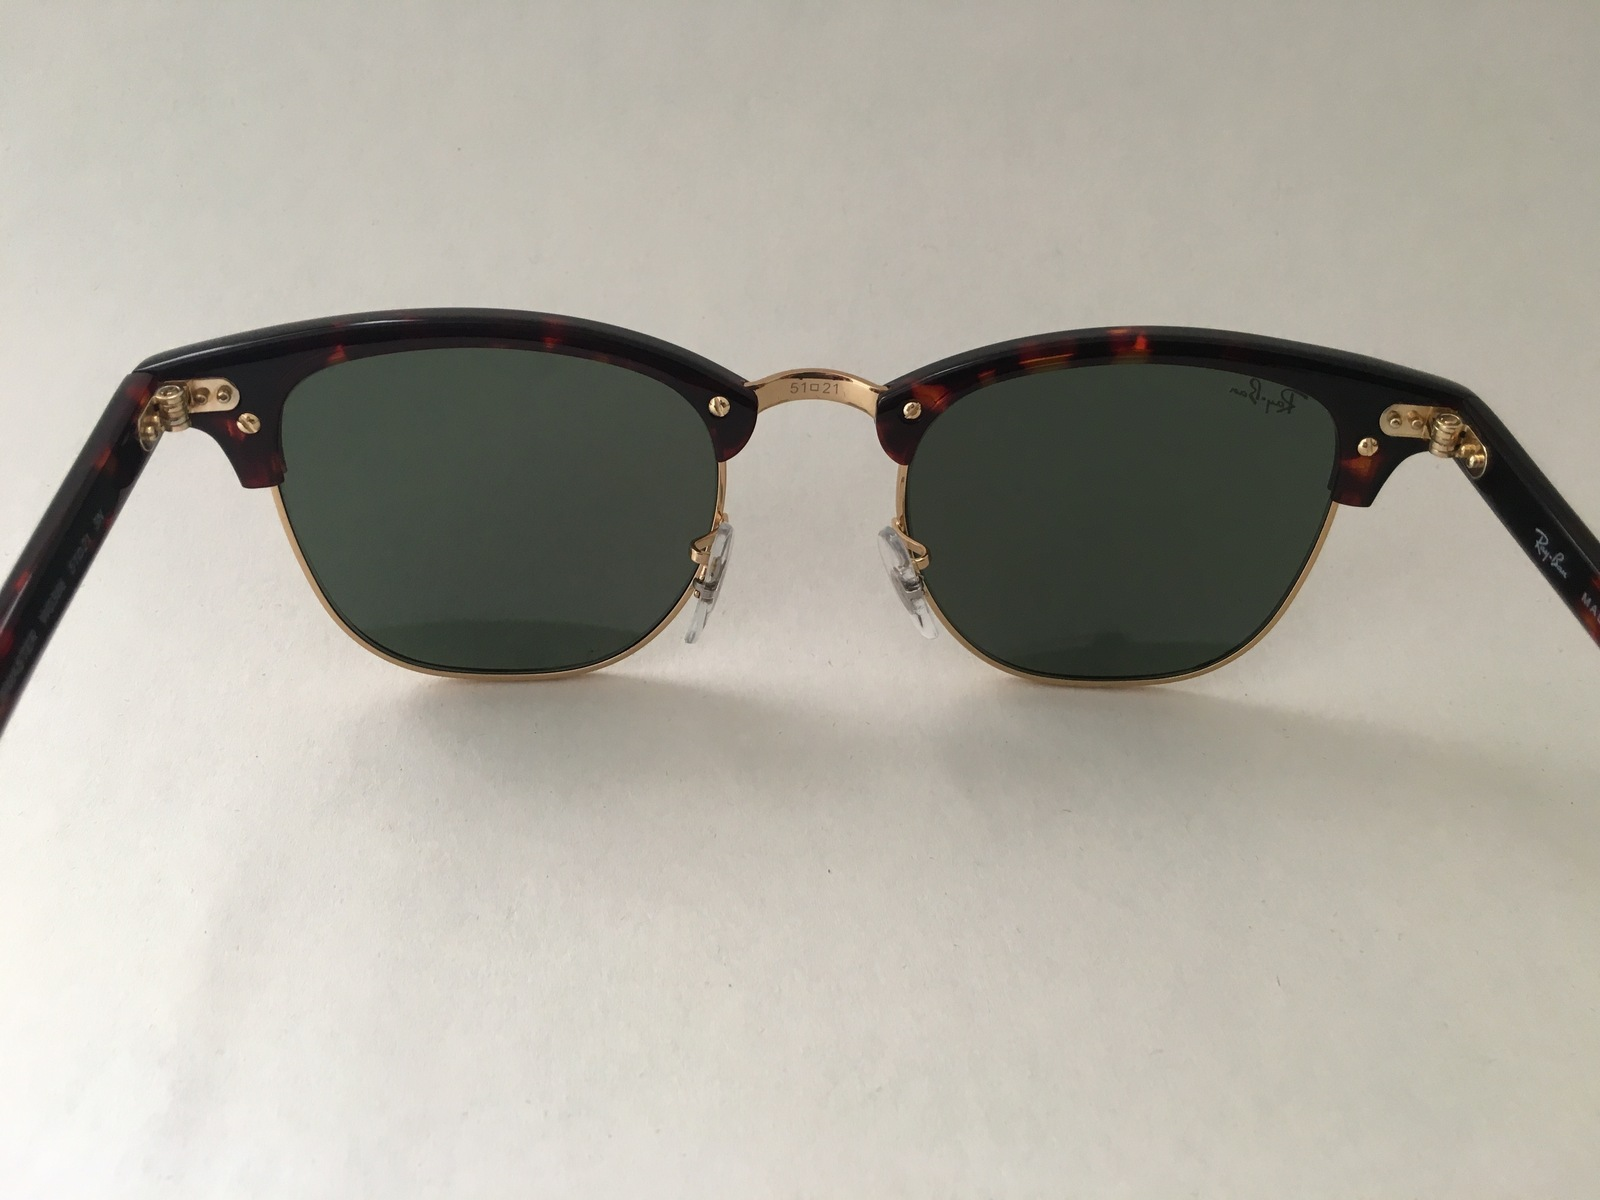 529a405922 Ray-Ban RB3016 W0366 Tortoise   Gold Clubmaster Sunglasses G15 Green Lens  100% U